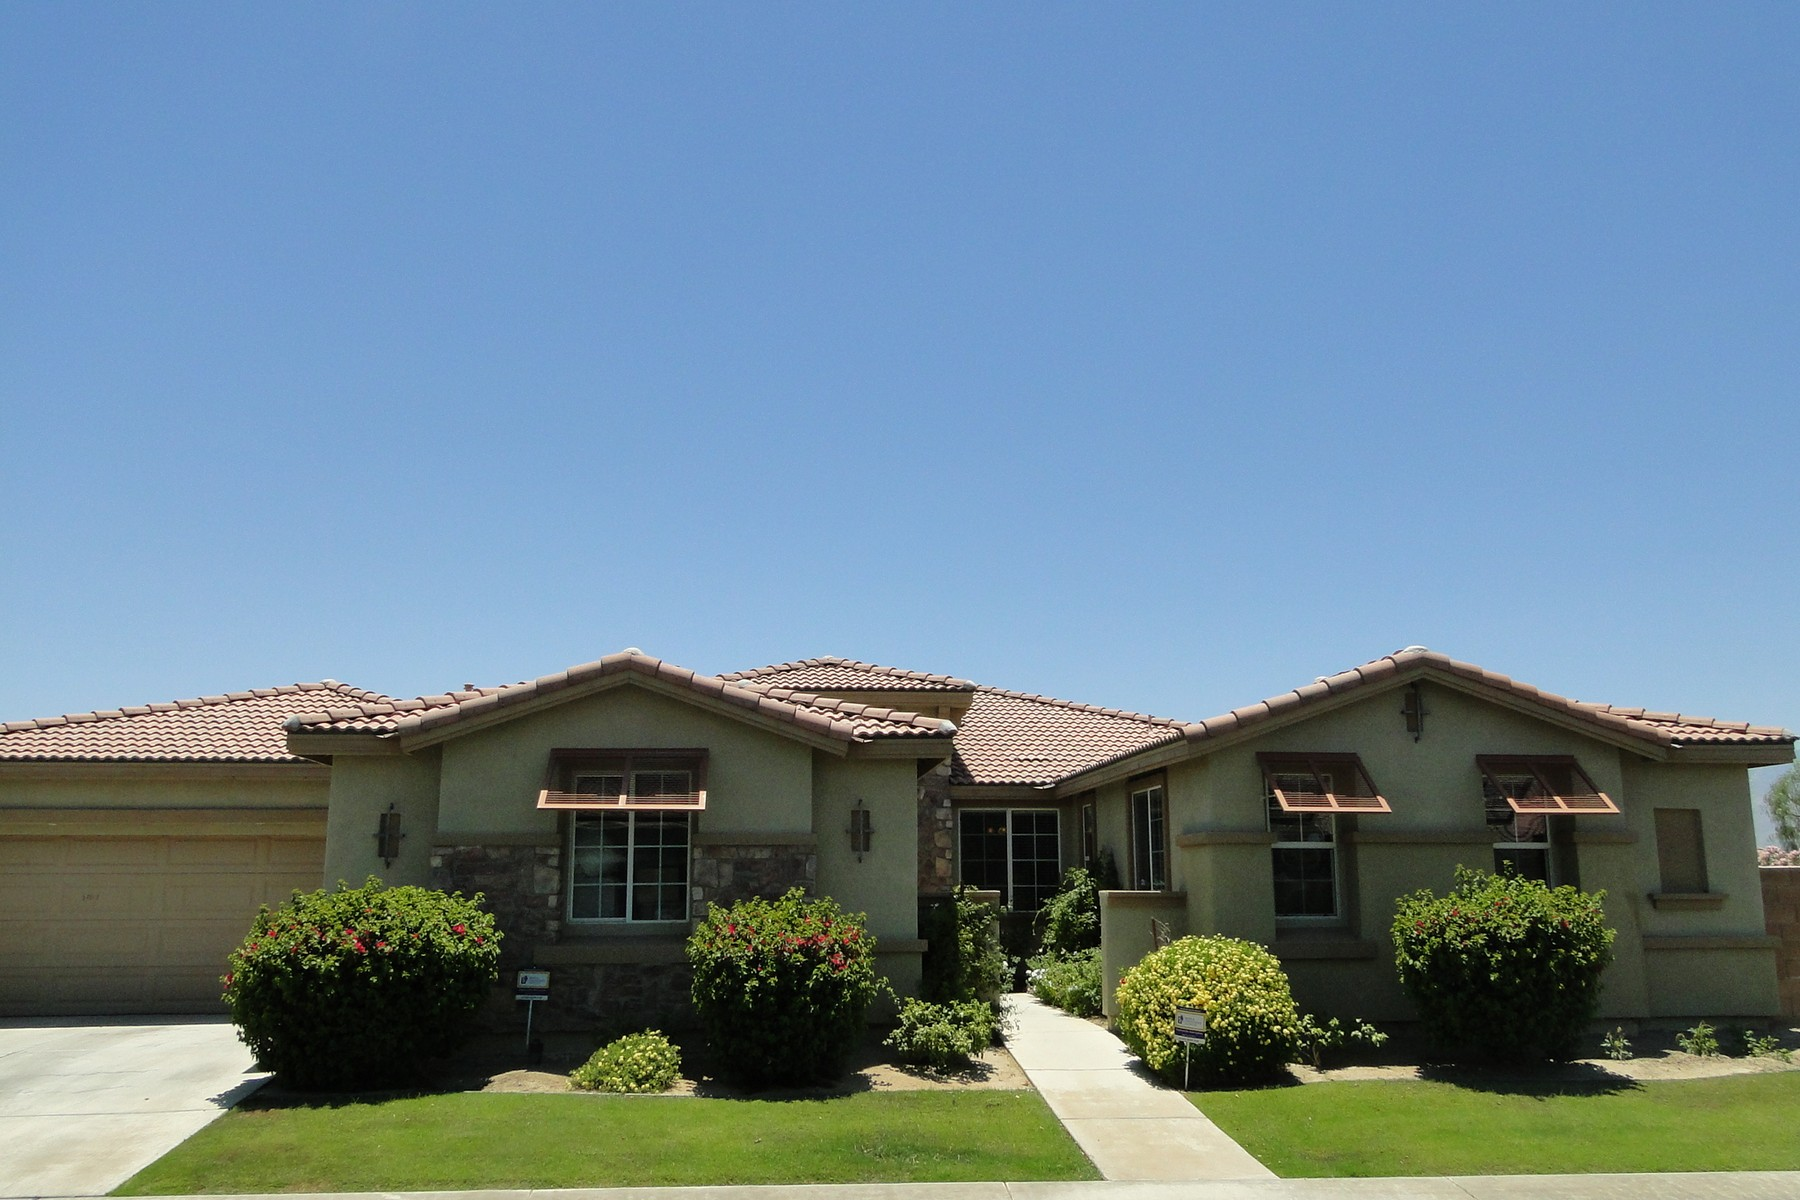 Single Family Home for Sale at 82807 Vincent Drive Indio, California 92203 United States